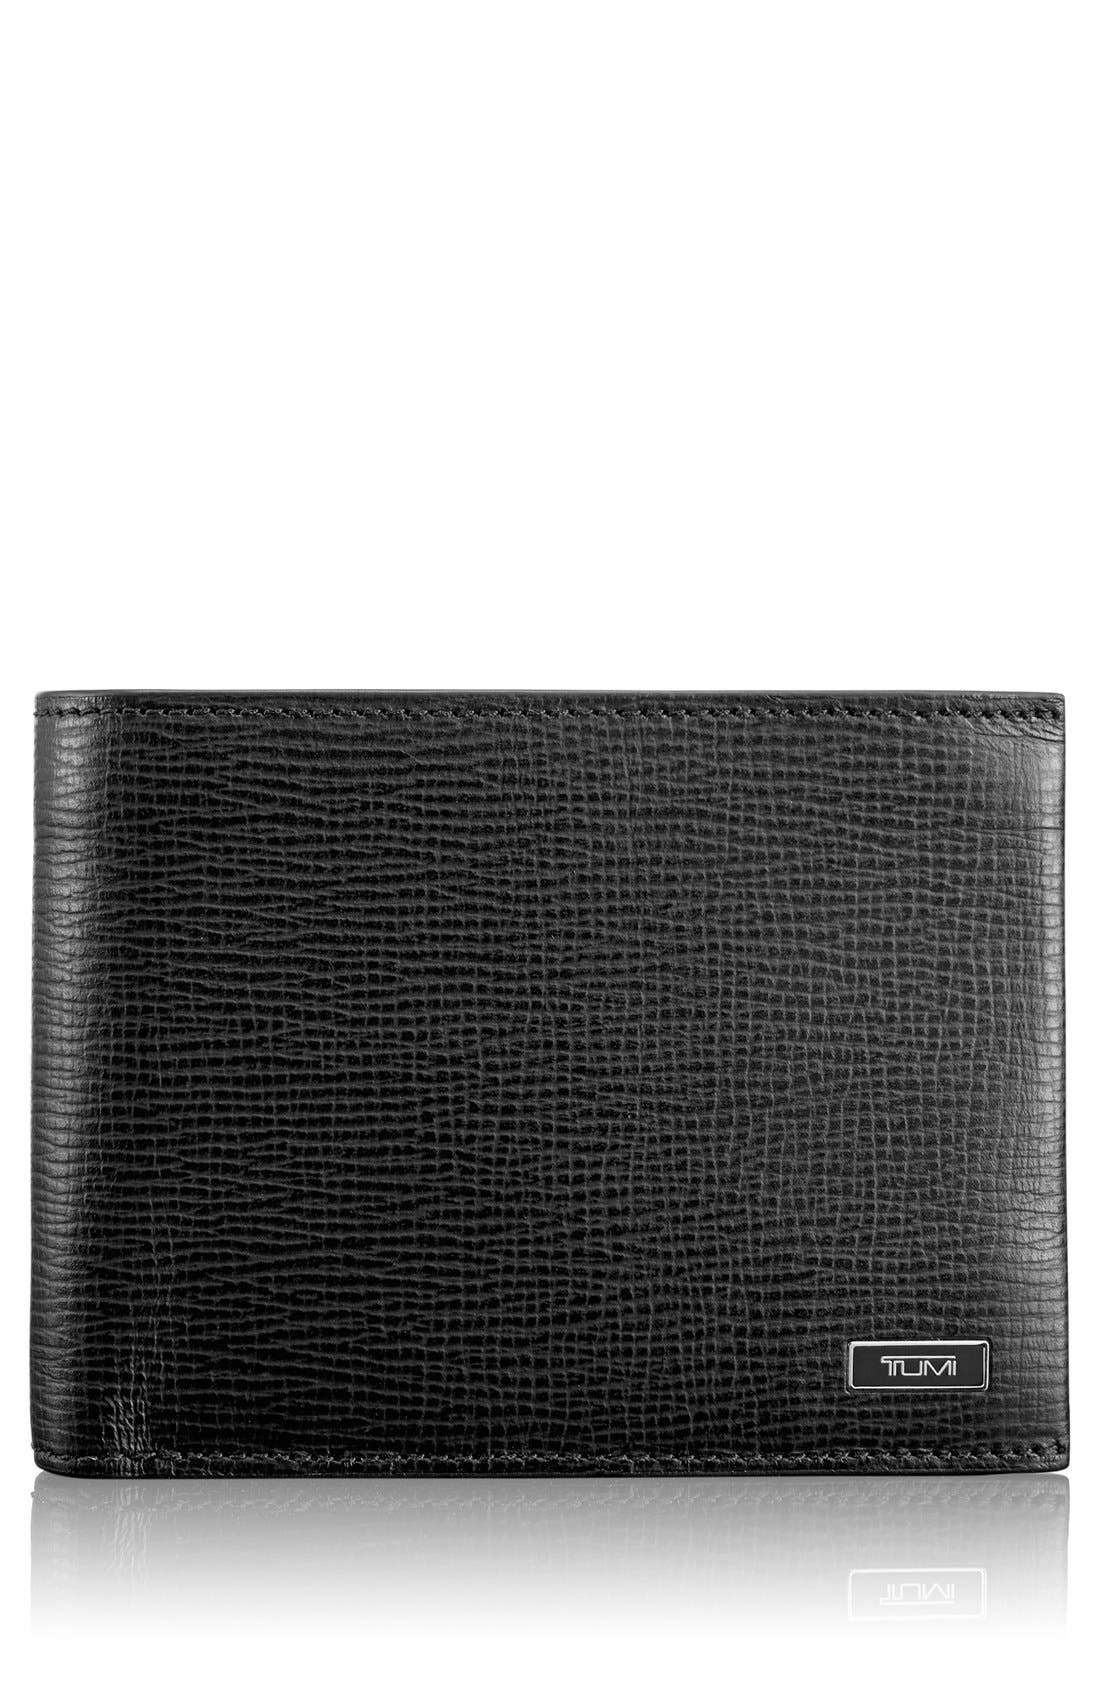 Monaco Global Leather Wallet with Coin Pocket,                         Main,                         color, BLACK